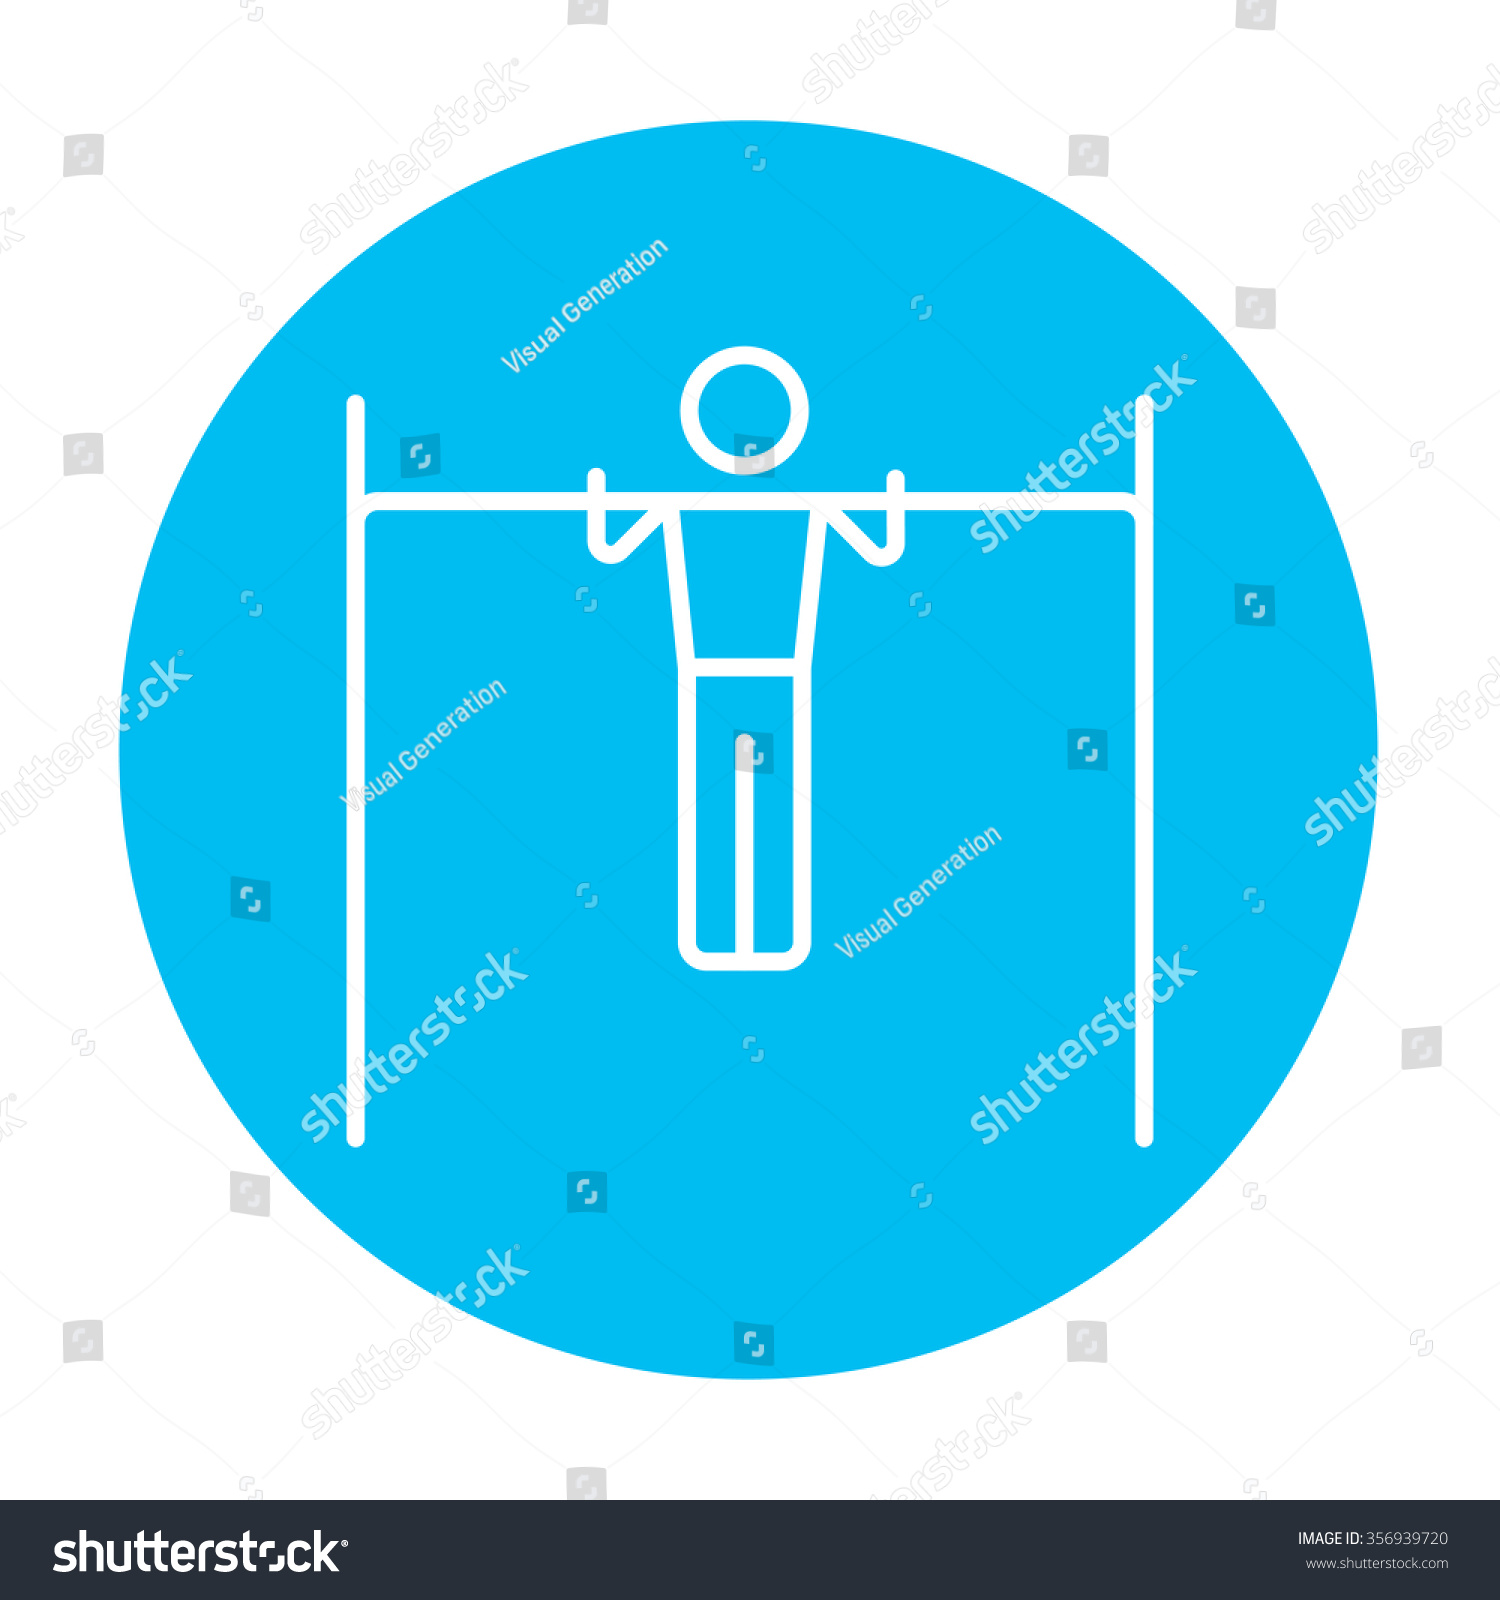 Vector light bar alternative clipart design gymnast exercising on bar line icon stock vector 356939720 rh shutterstock com vector light bar for aloadofball Choice Image